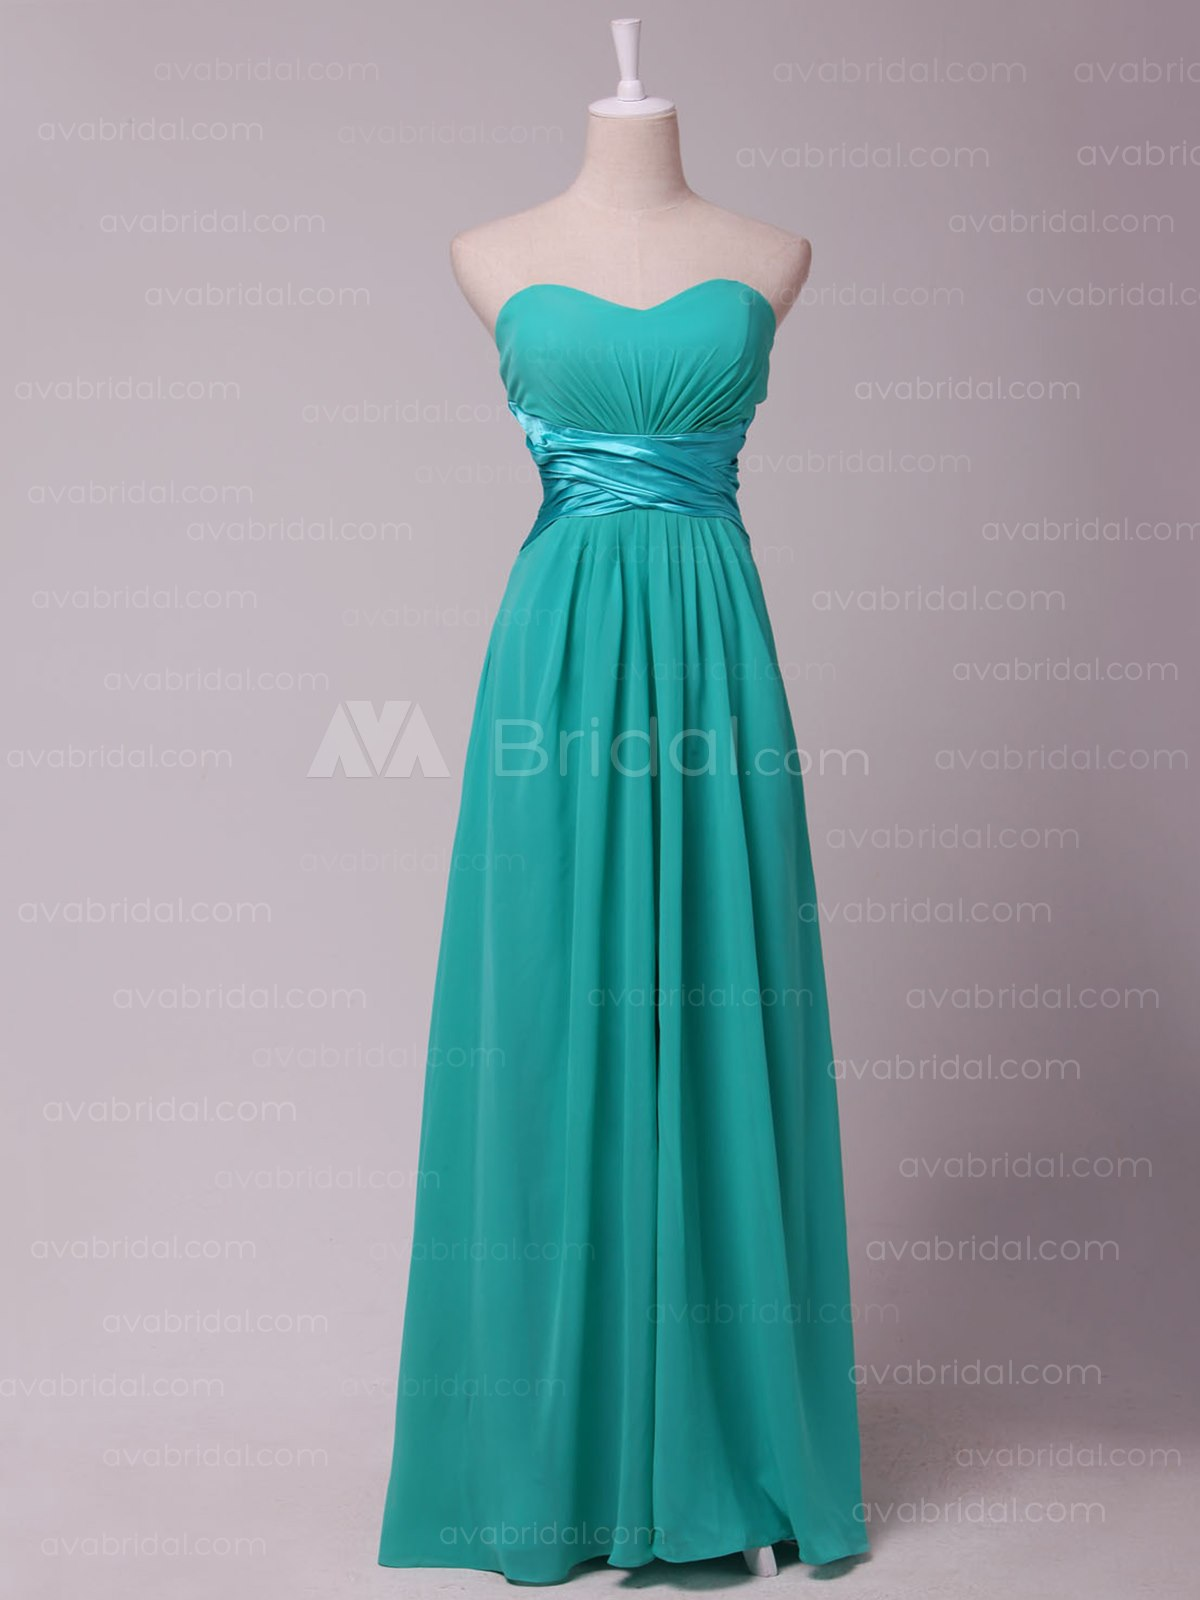 Modern Slim Line Chiffon Bridesmaid Dress B454-Front